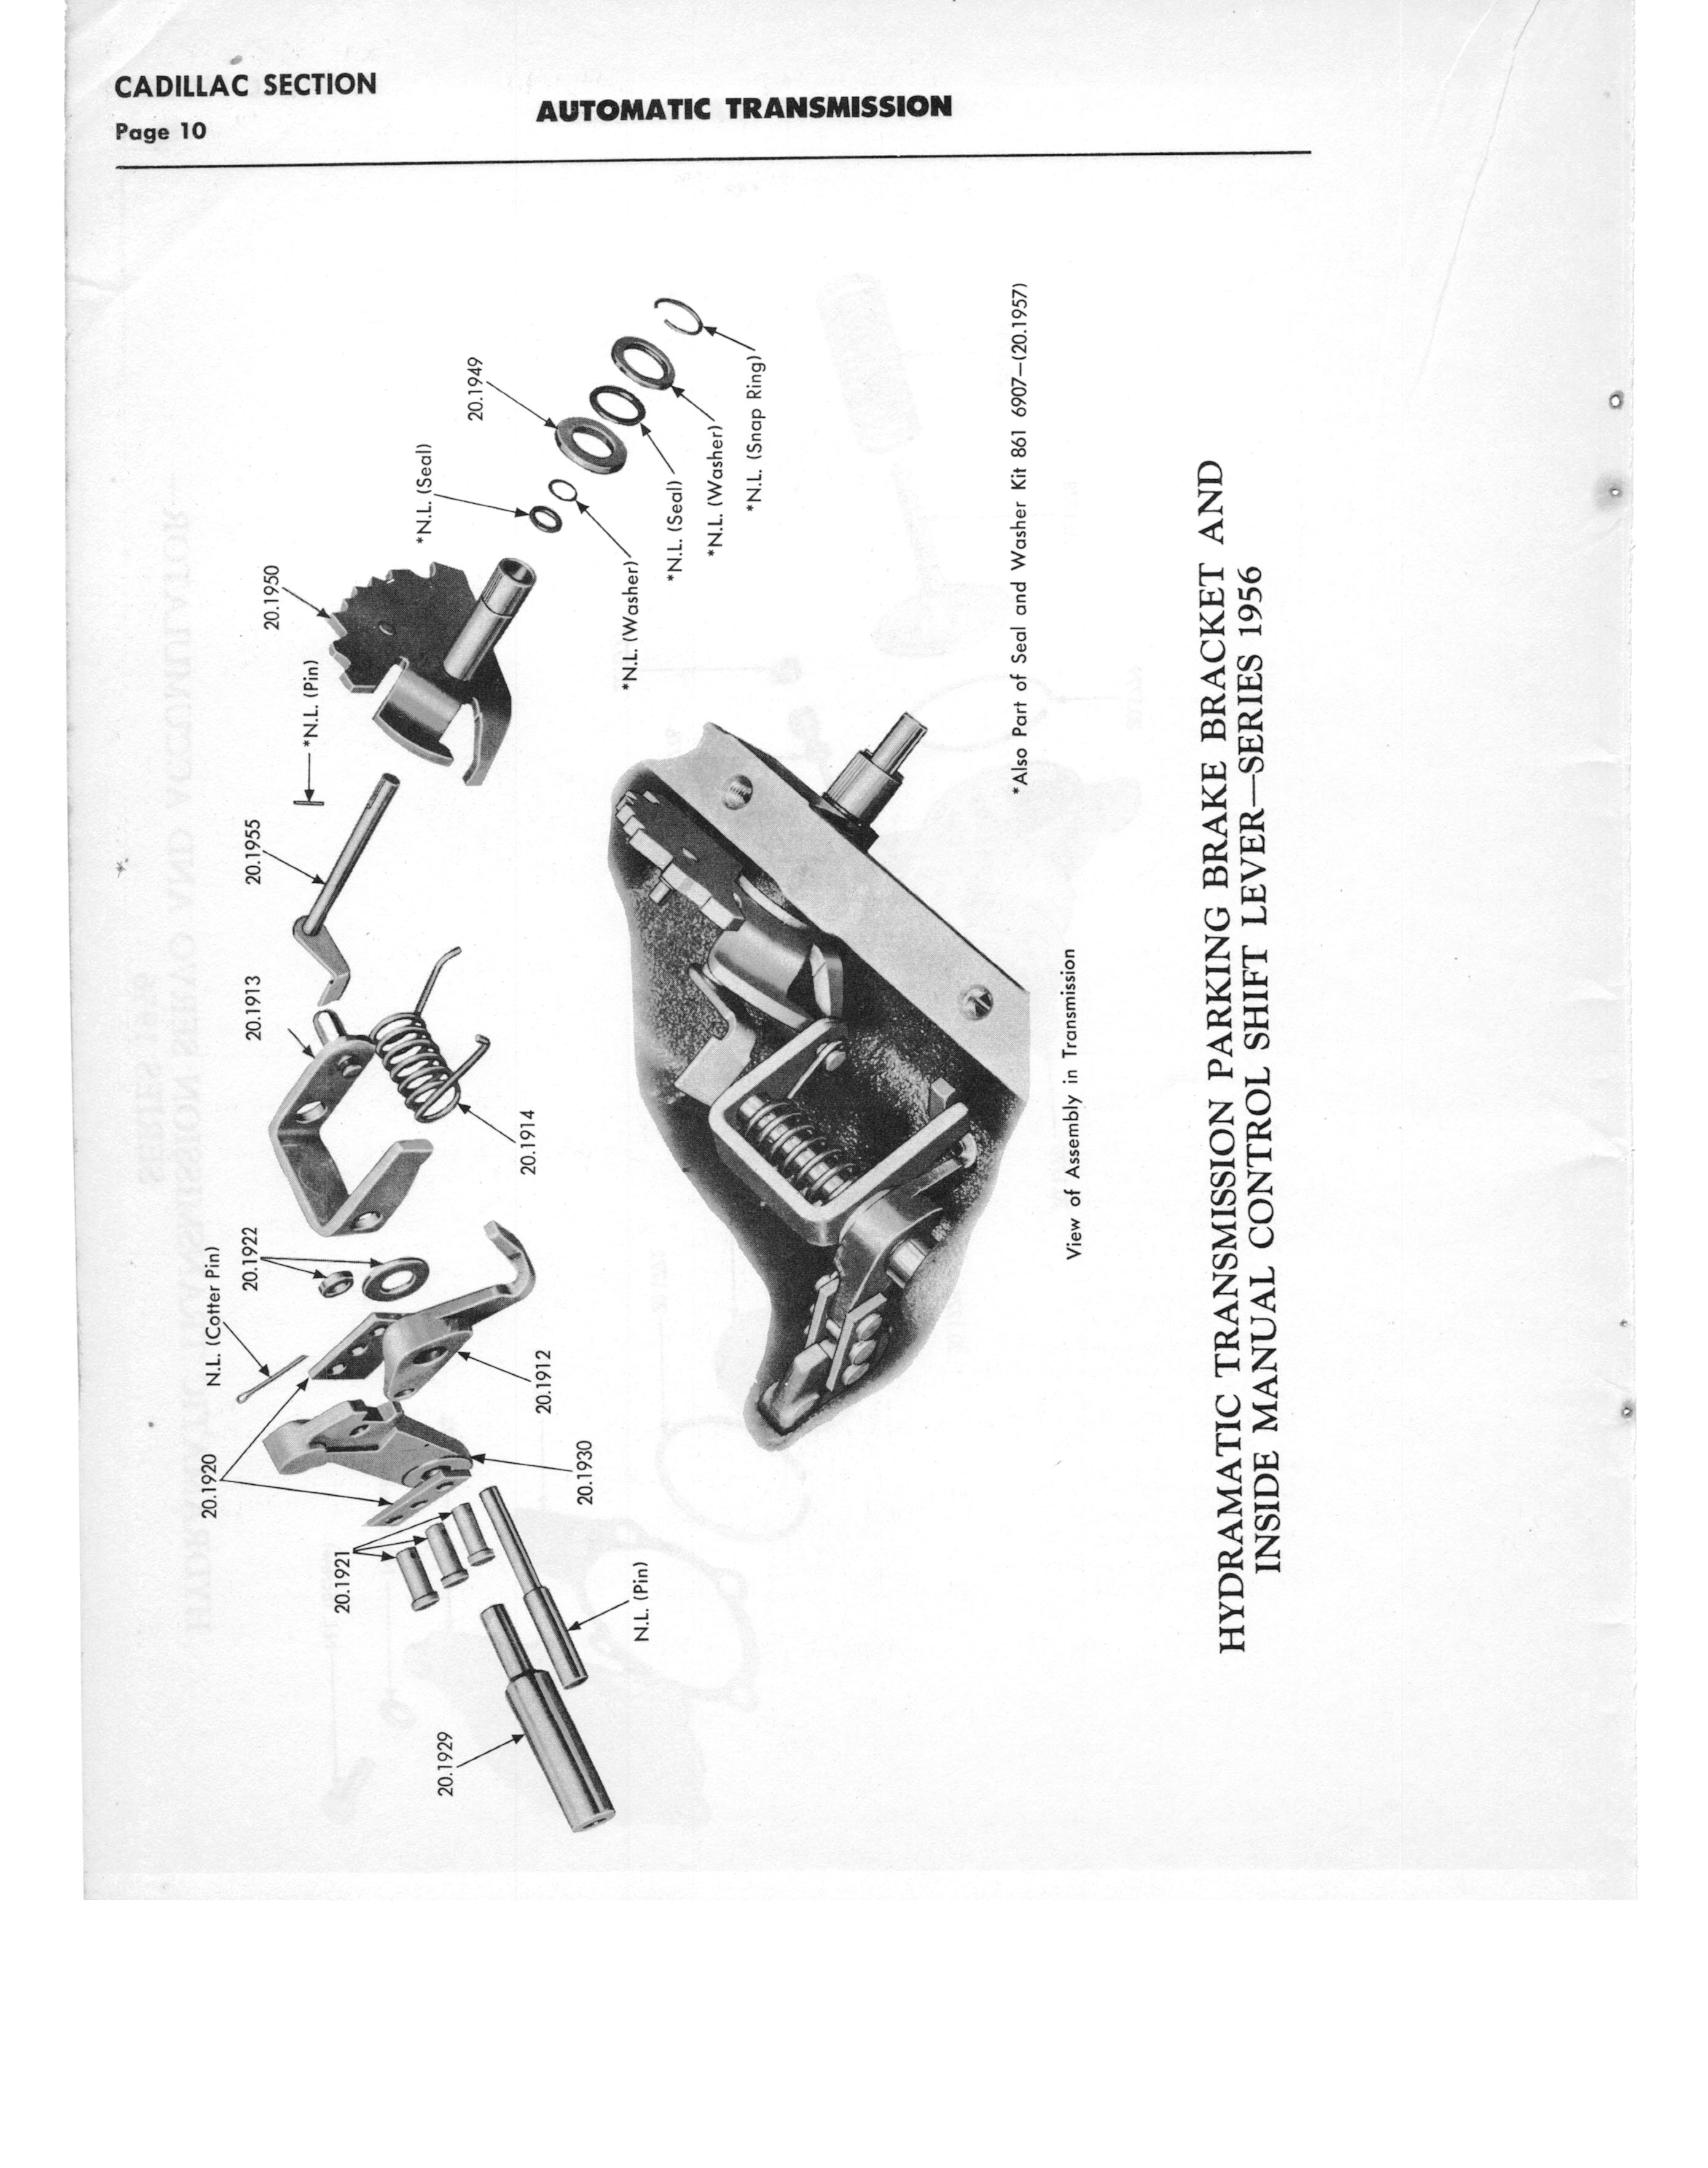 Gm Automatic Transmission Parts Catalog Supplement To A Page 16 Of 97